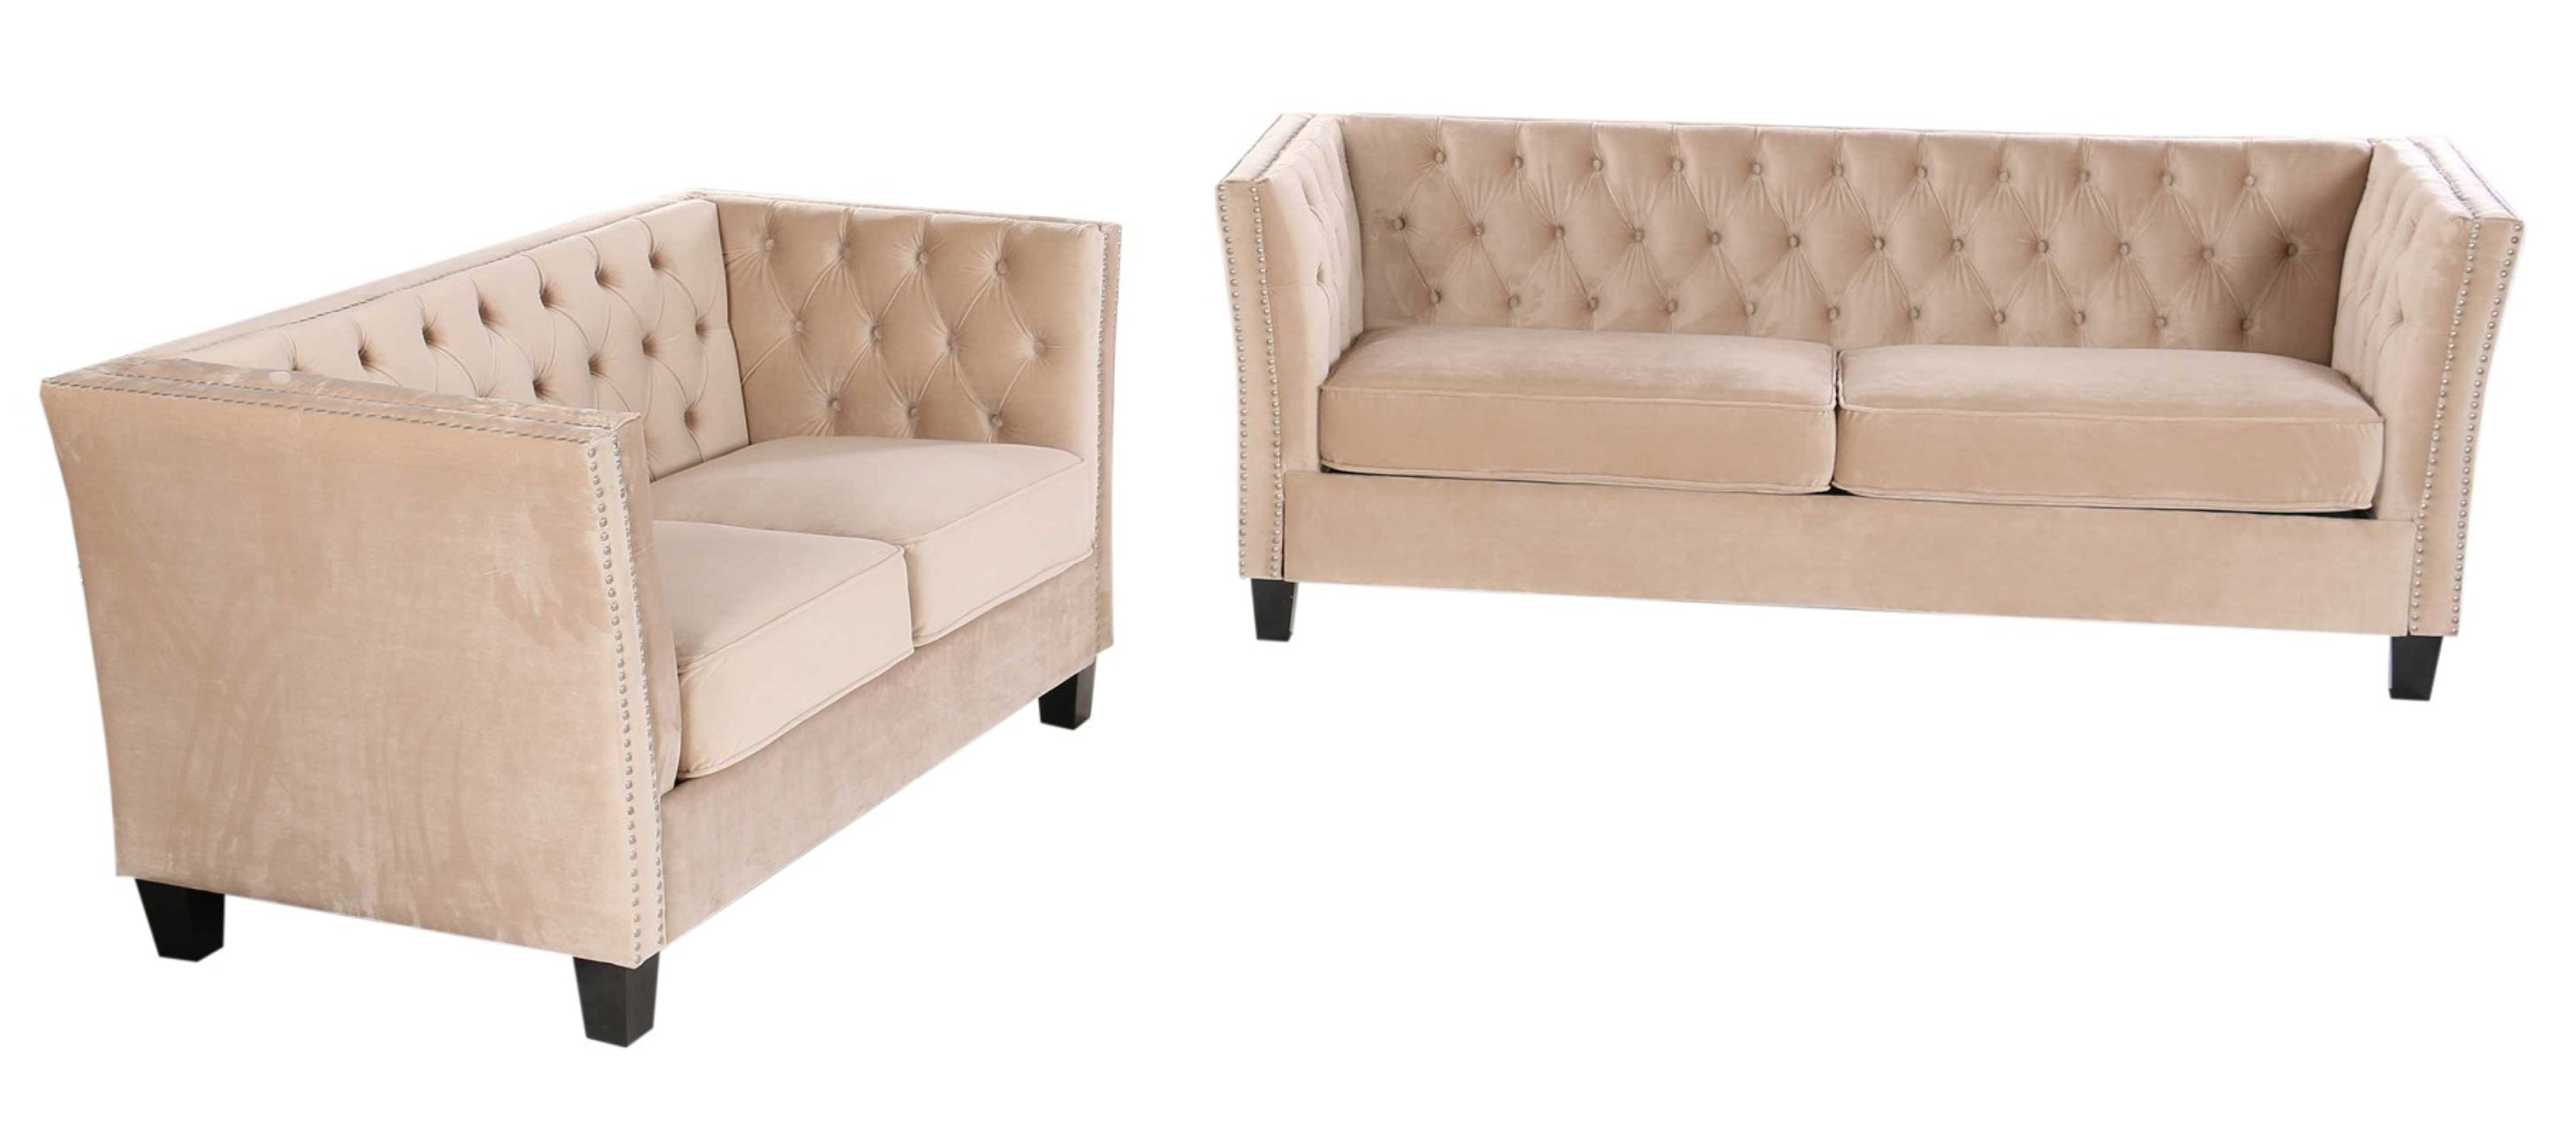 Chesterfield Sofas: Now in Flat-Pack!